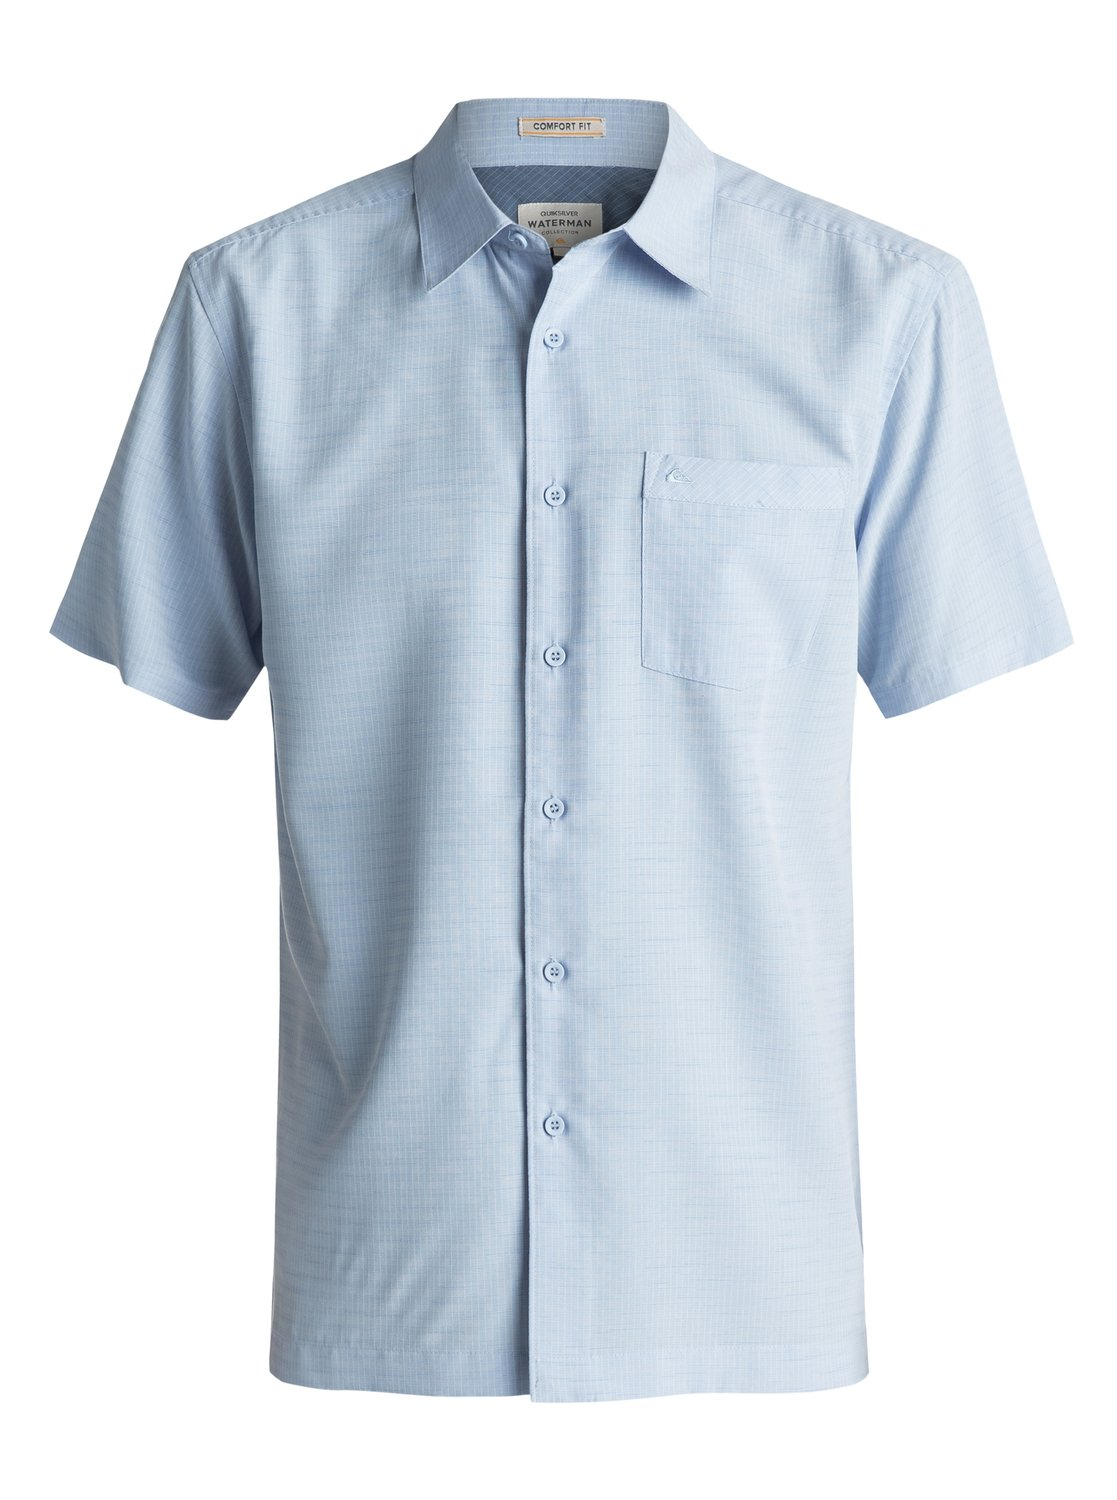 Shop our Men's Short-Sleeve Shirts Sale at Orvis; discover a wide array of top-quality short-sleeve shirts for men in solids, plaids, and patterns.